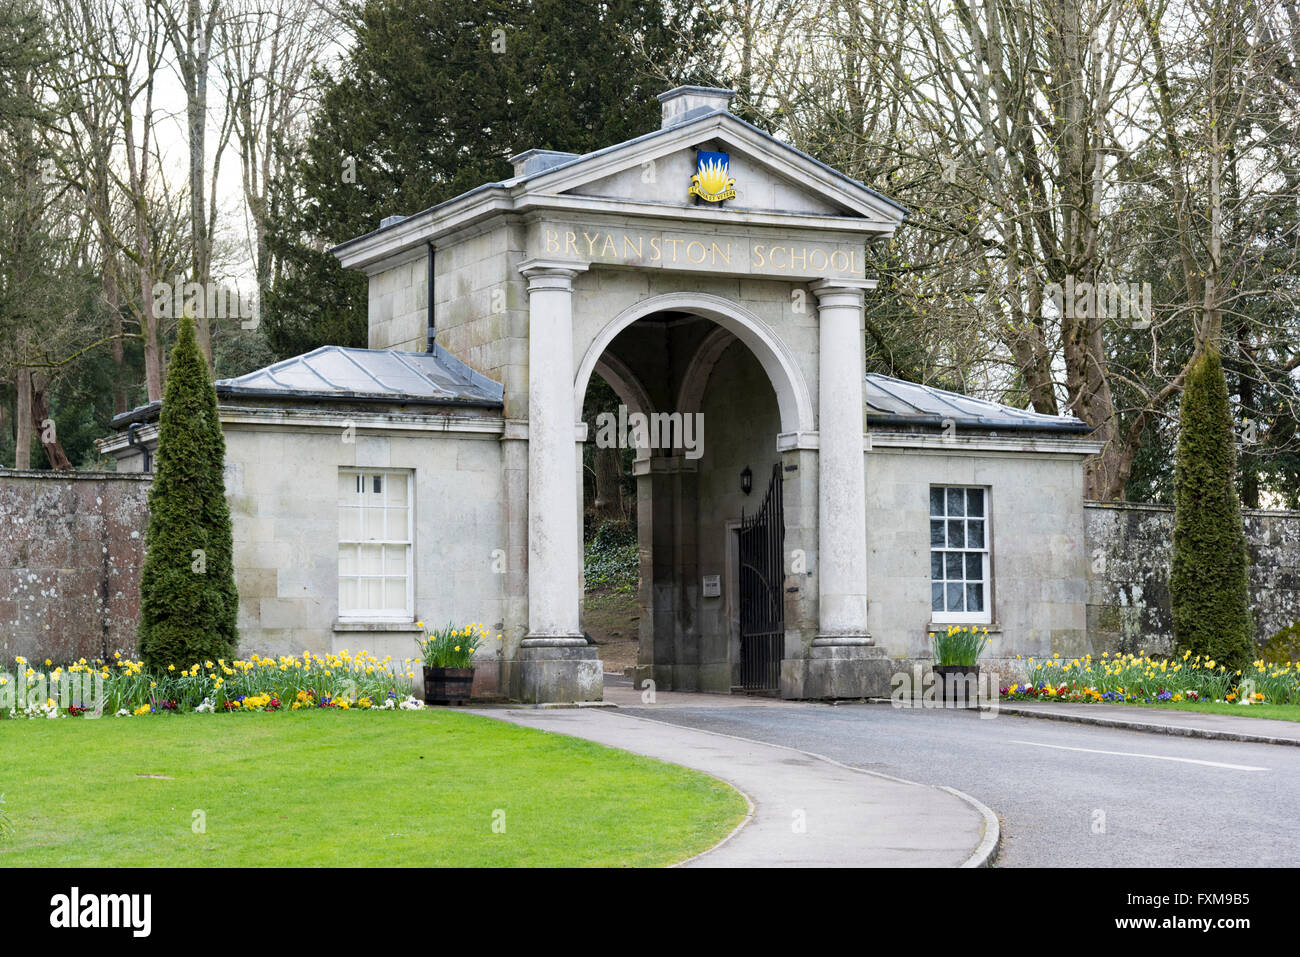 Bryanston School entrance and gateway in Blandford Forum Dorset UK - Stock Image